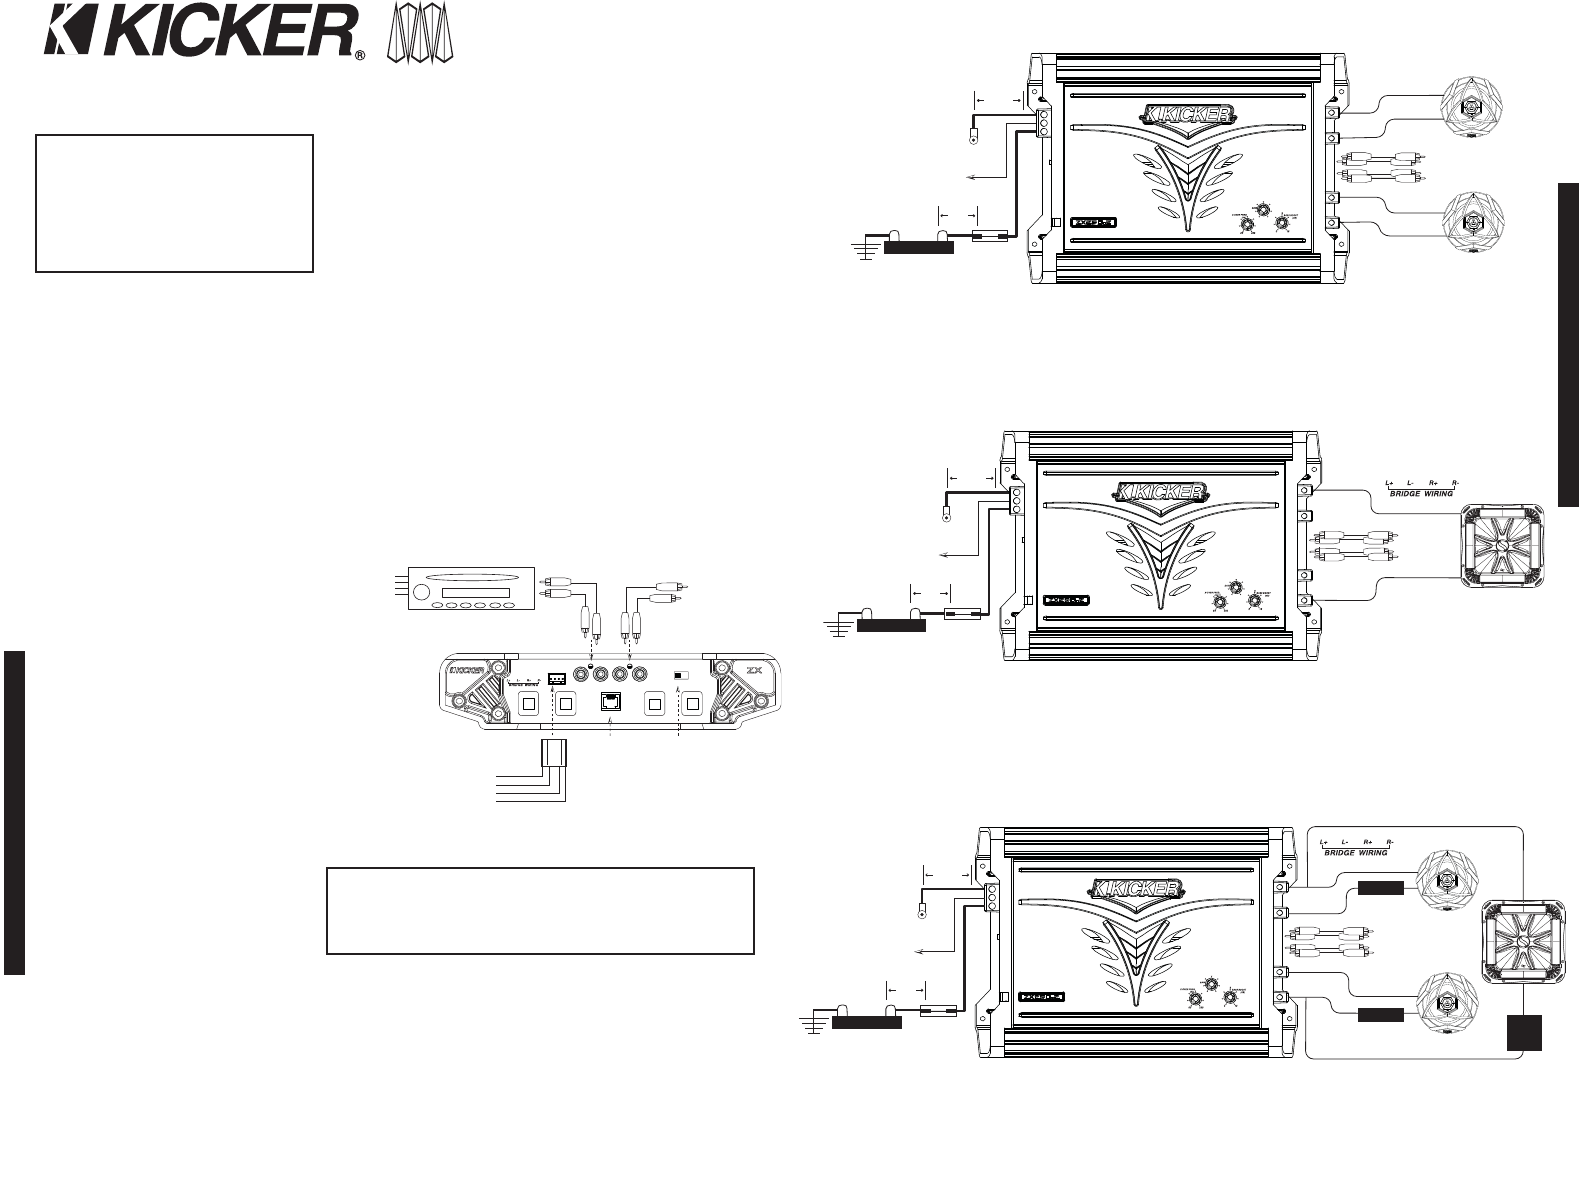 Kicker Zx300 1 Wiring Diagram